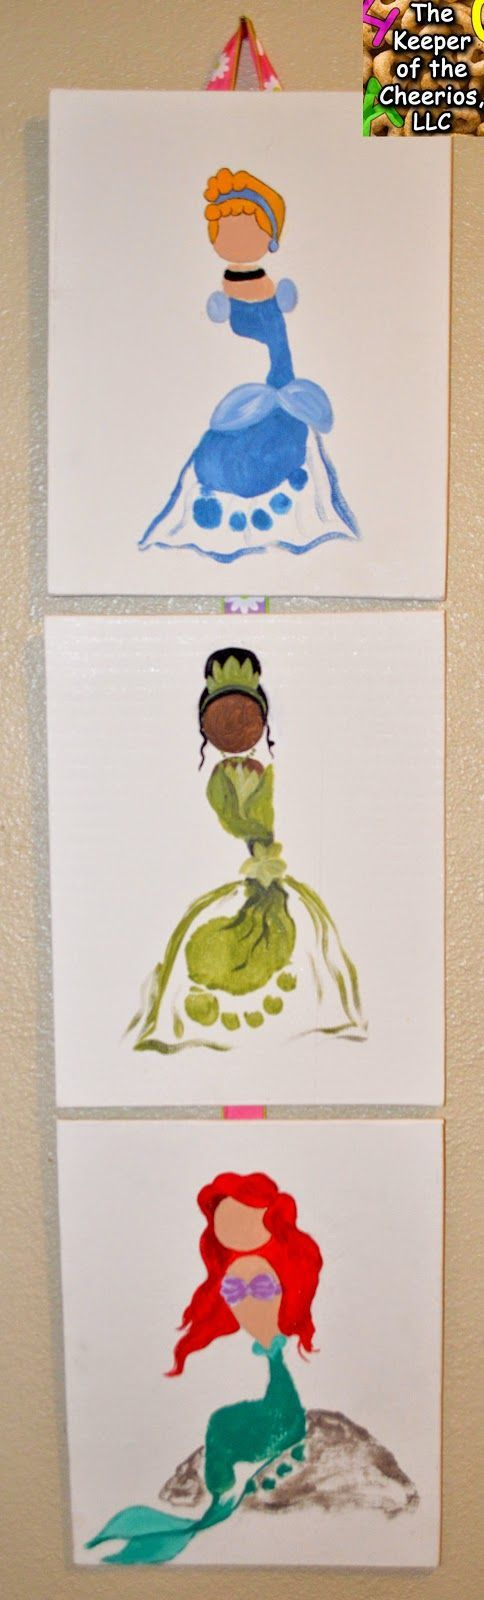 Disney Princess Footprint Craft, Cinderella Footprint, Tiana Princess and the Frog Footprint, Ariel Little Mermaid Footprint